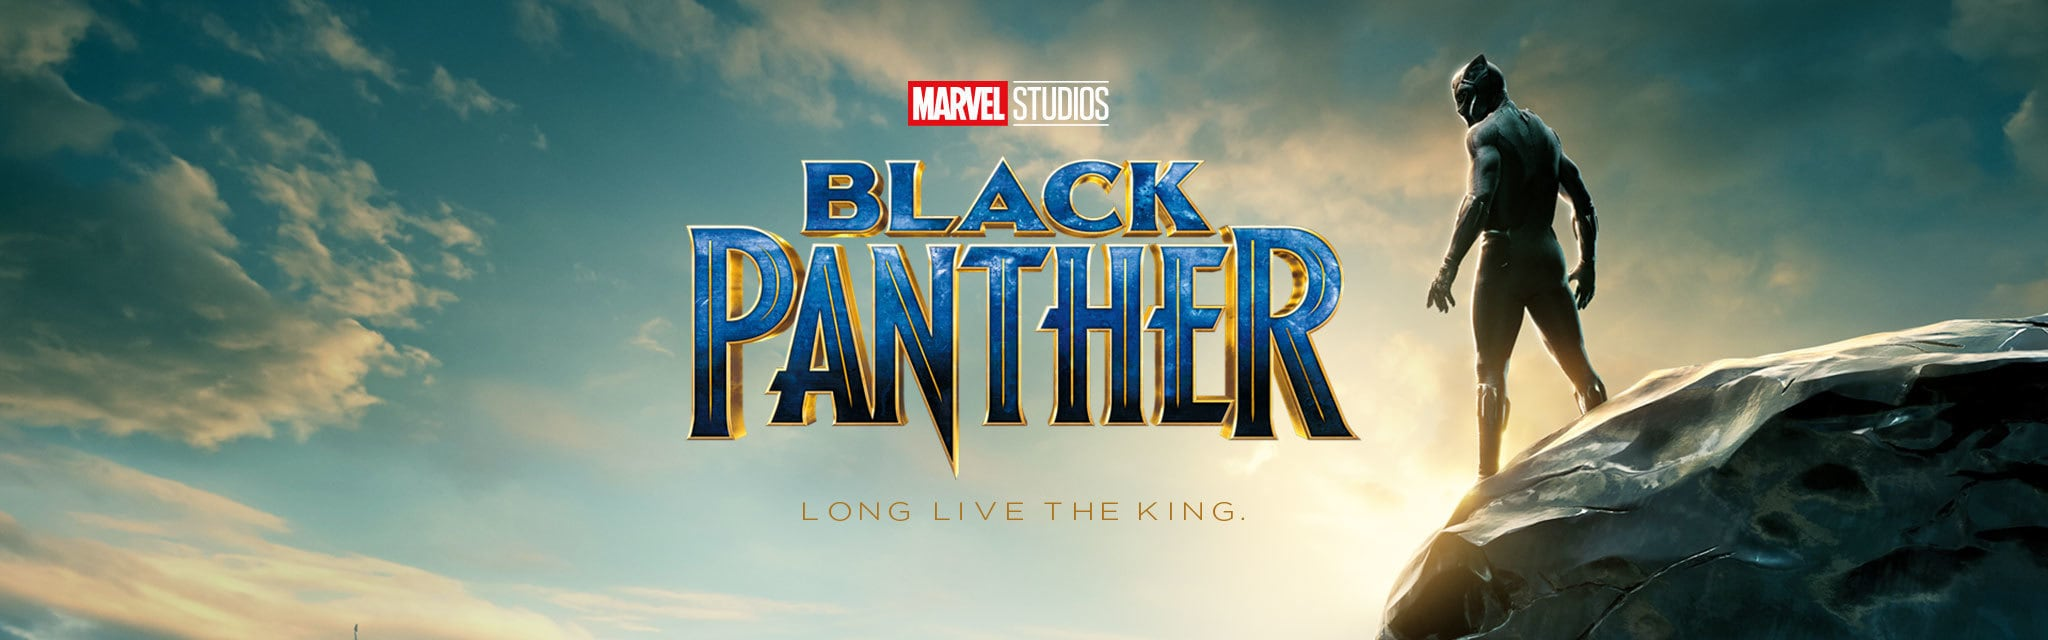 The Black Panther - In Cinemas Now - MY